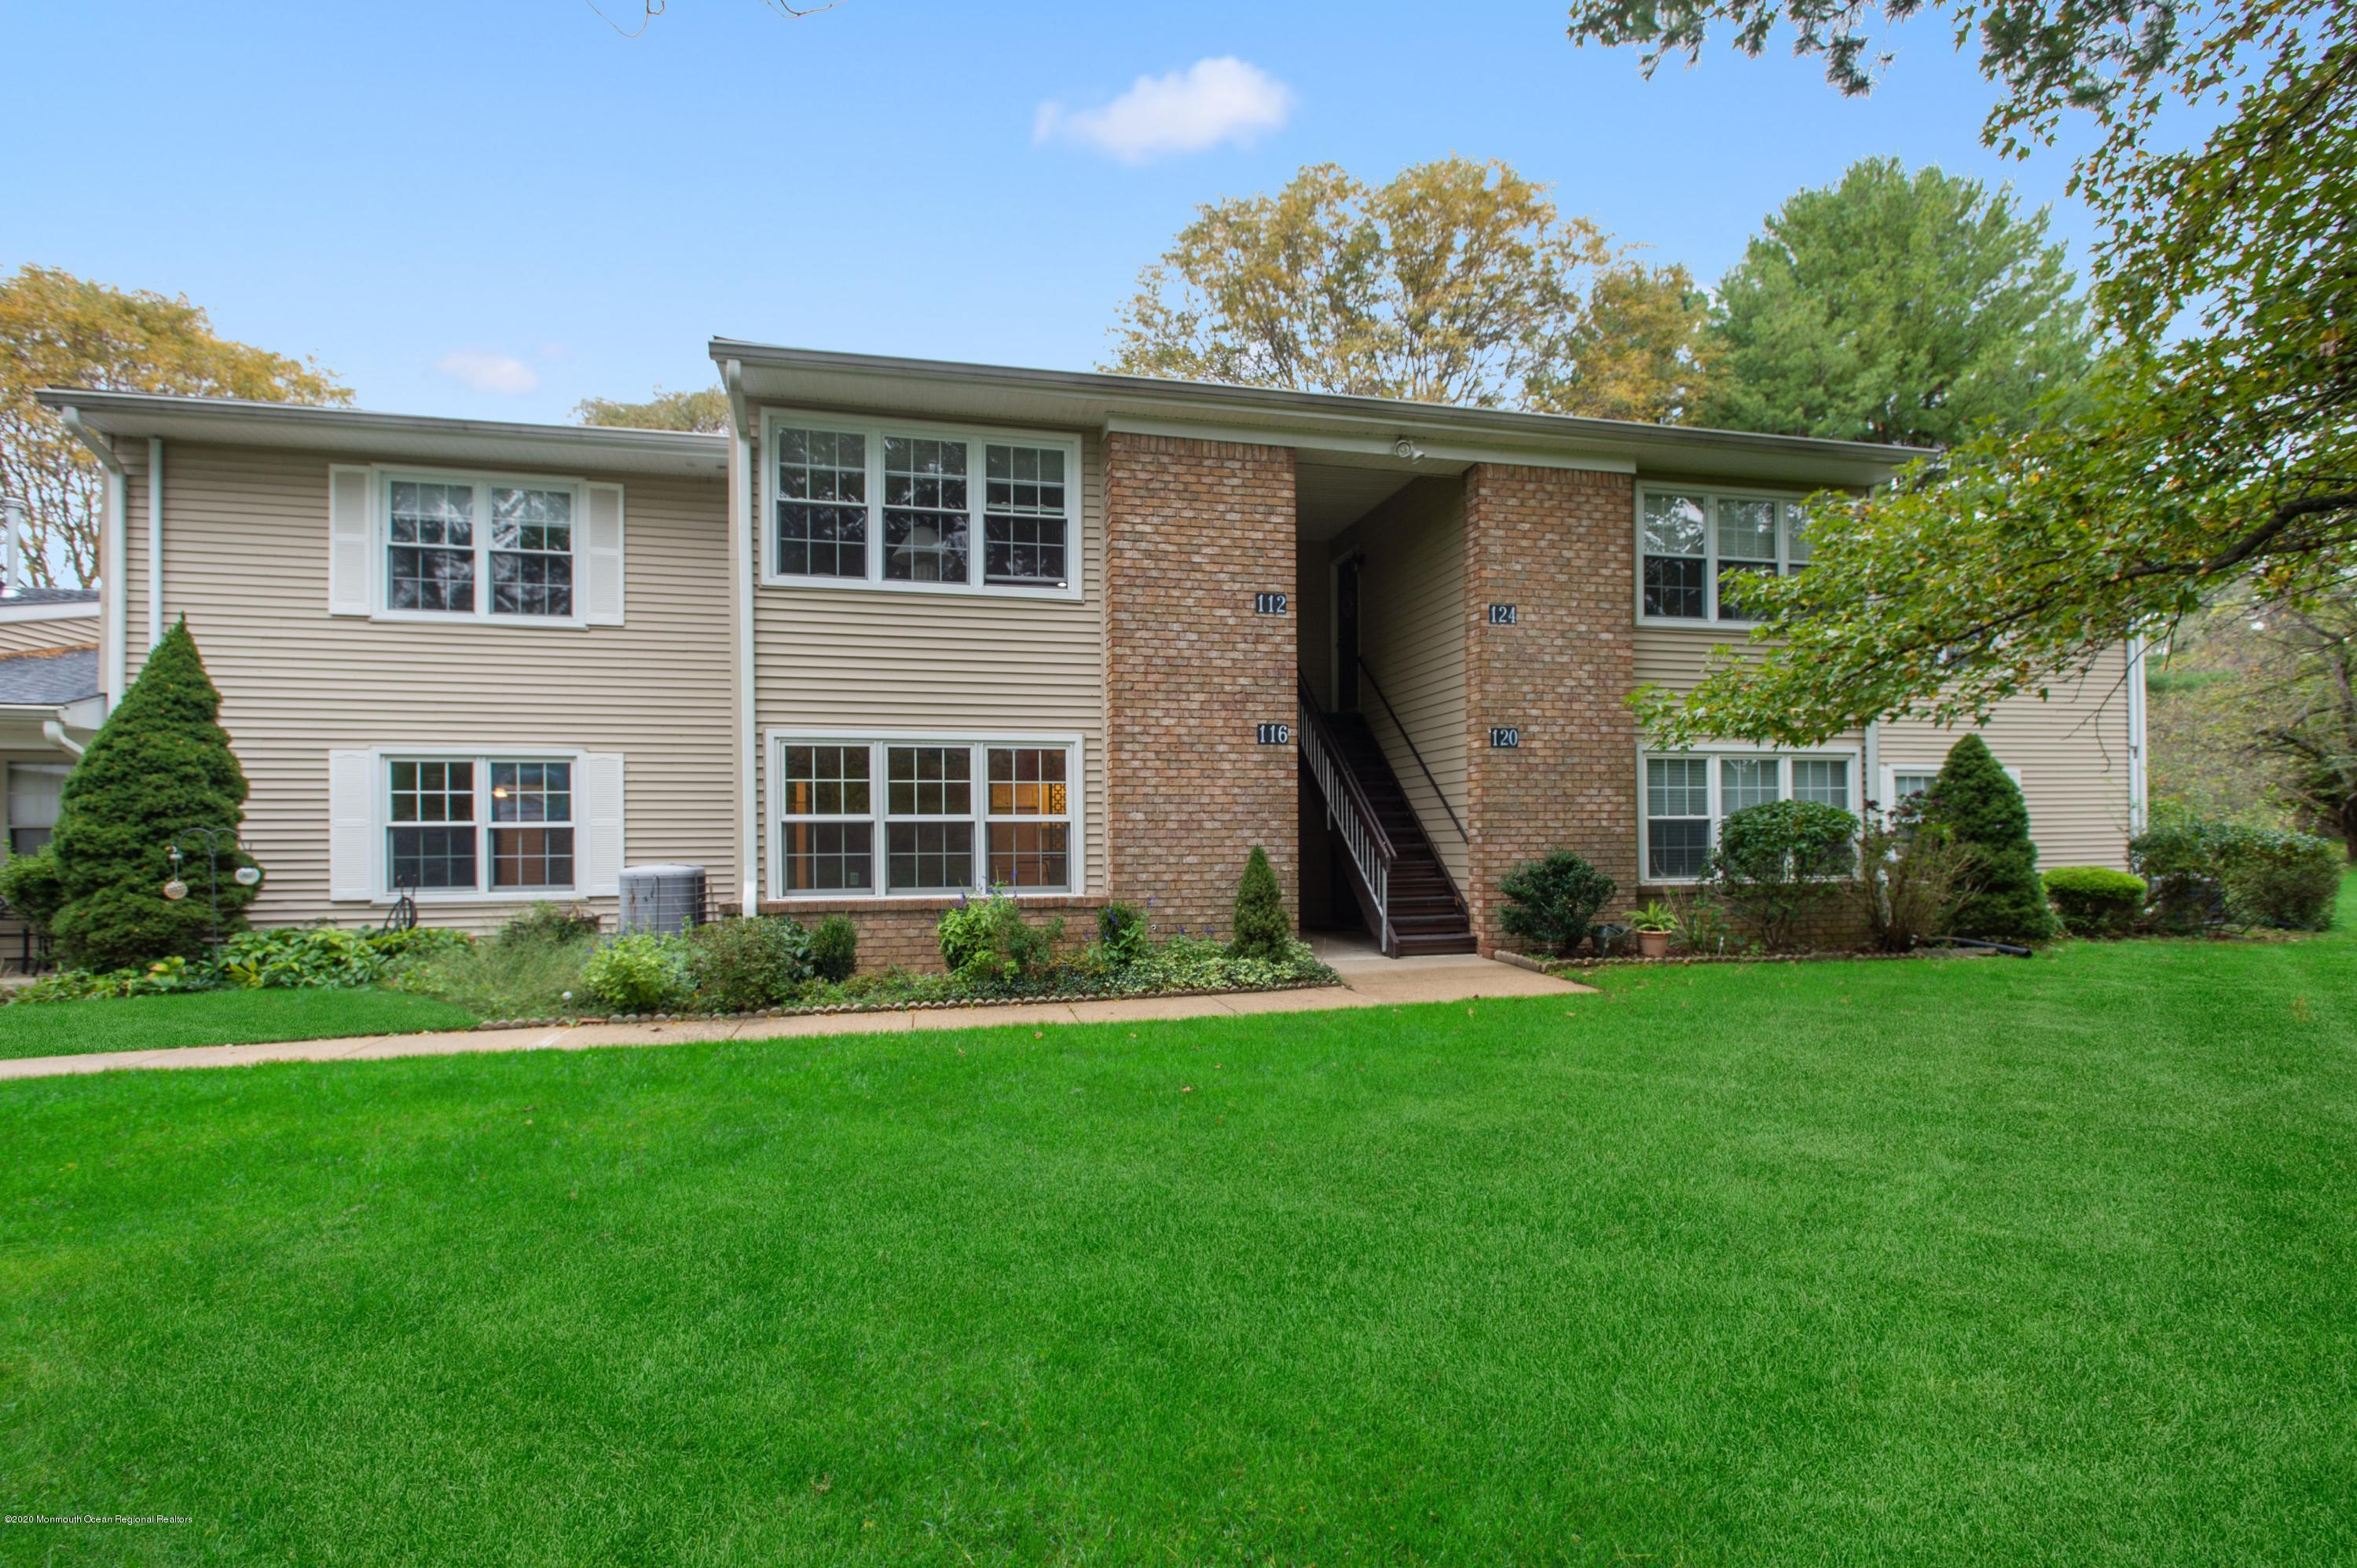 55+ communities participate in middletown nj with a view rent